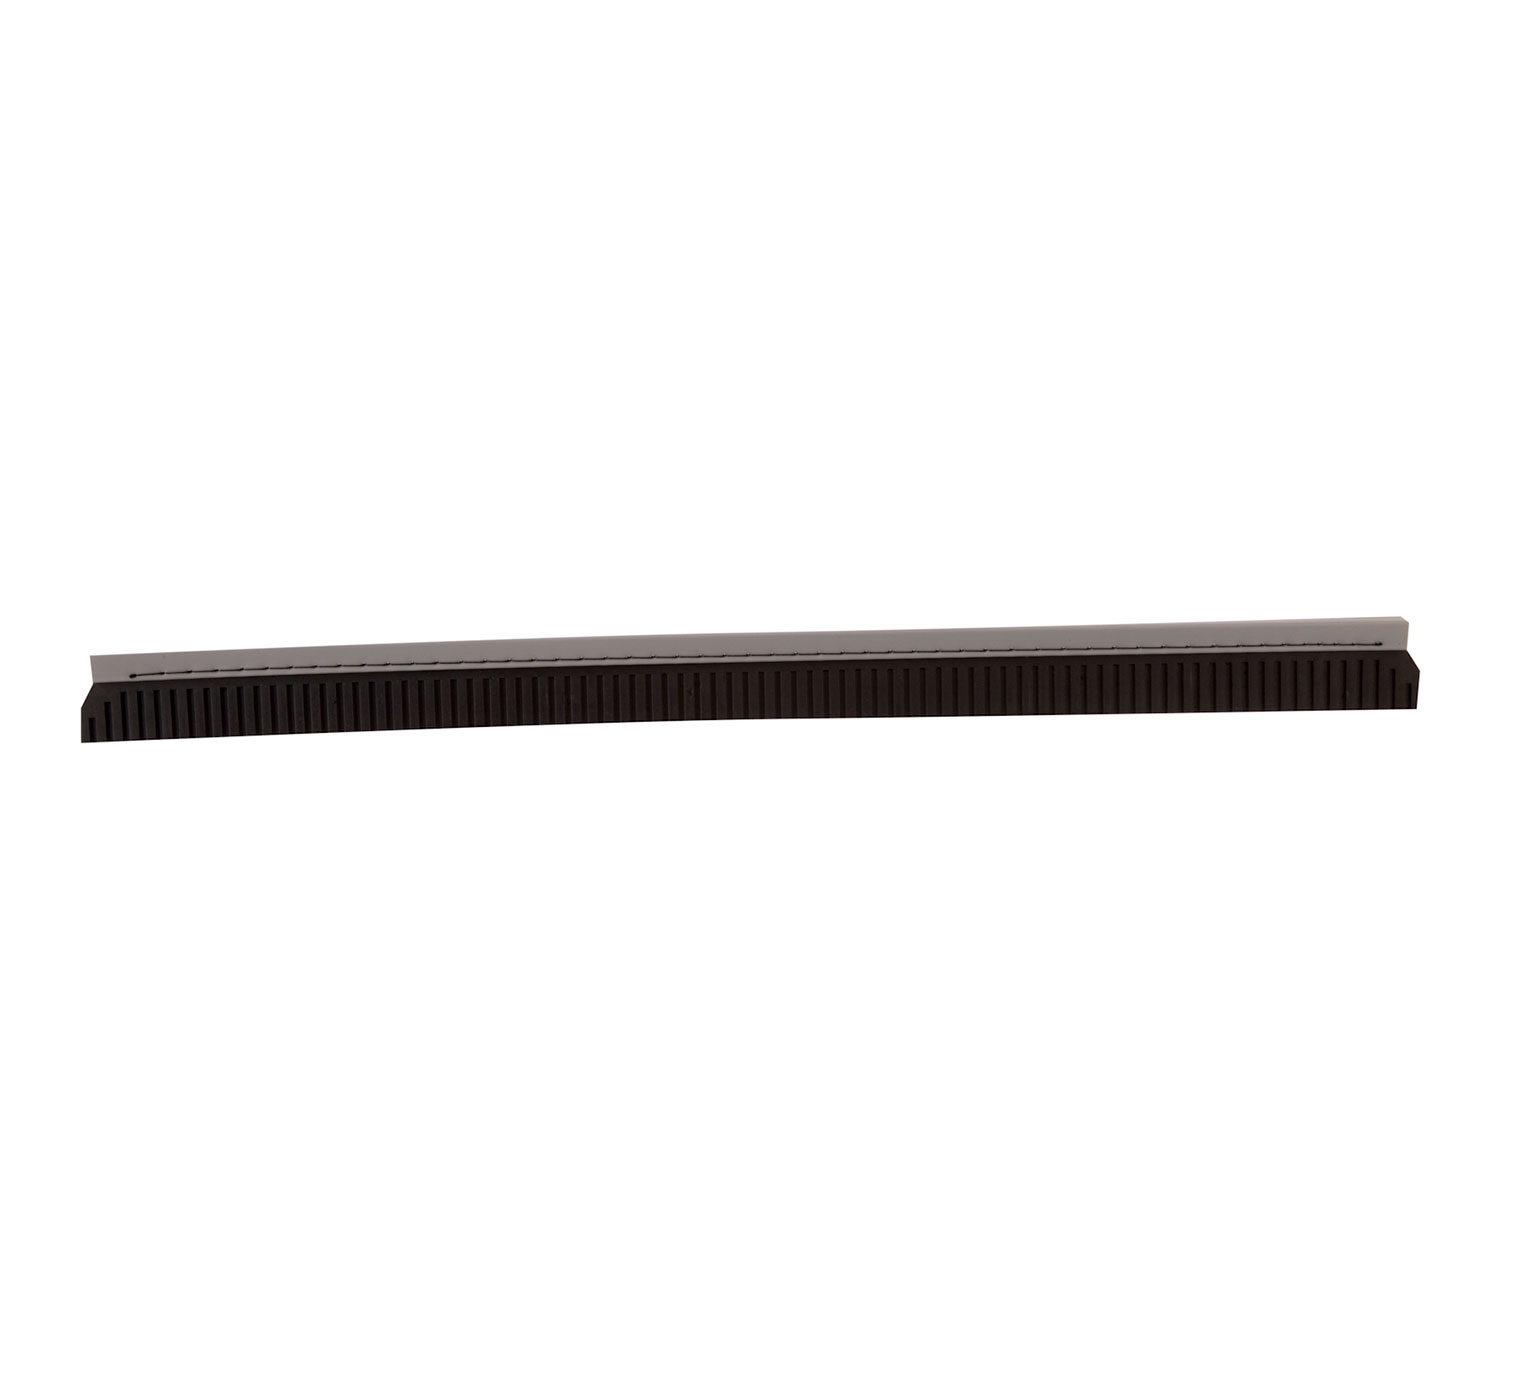 Tennant T1 Squeegee Blade Outer Band